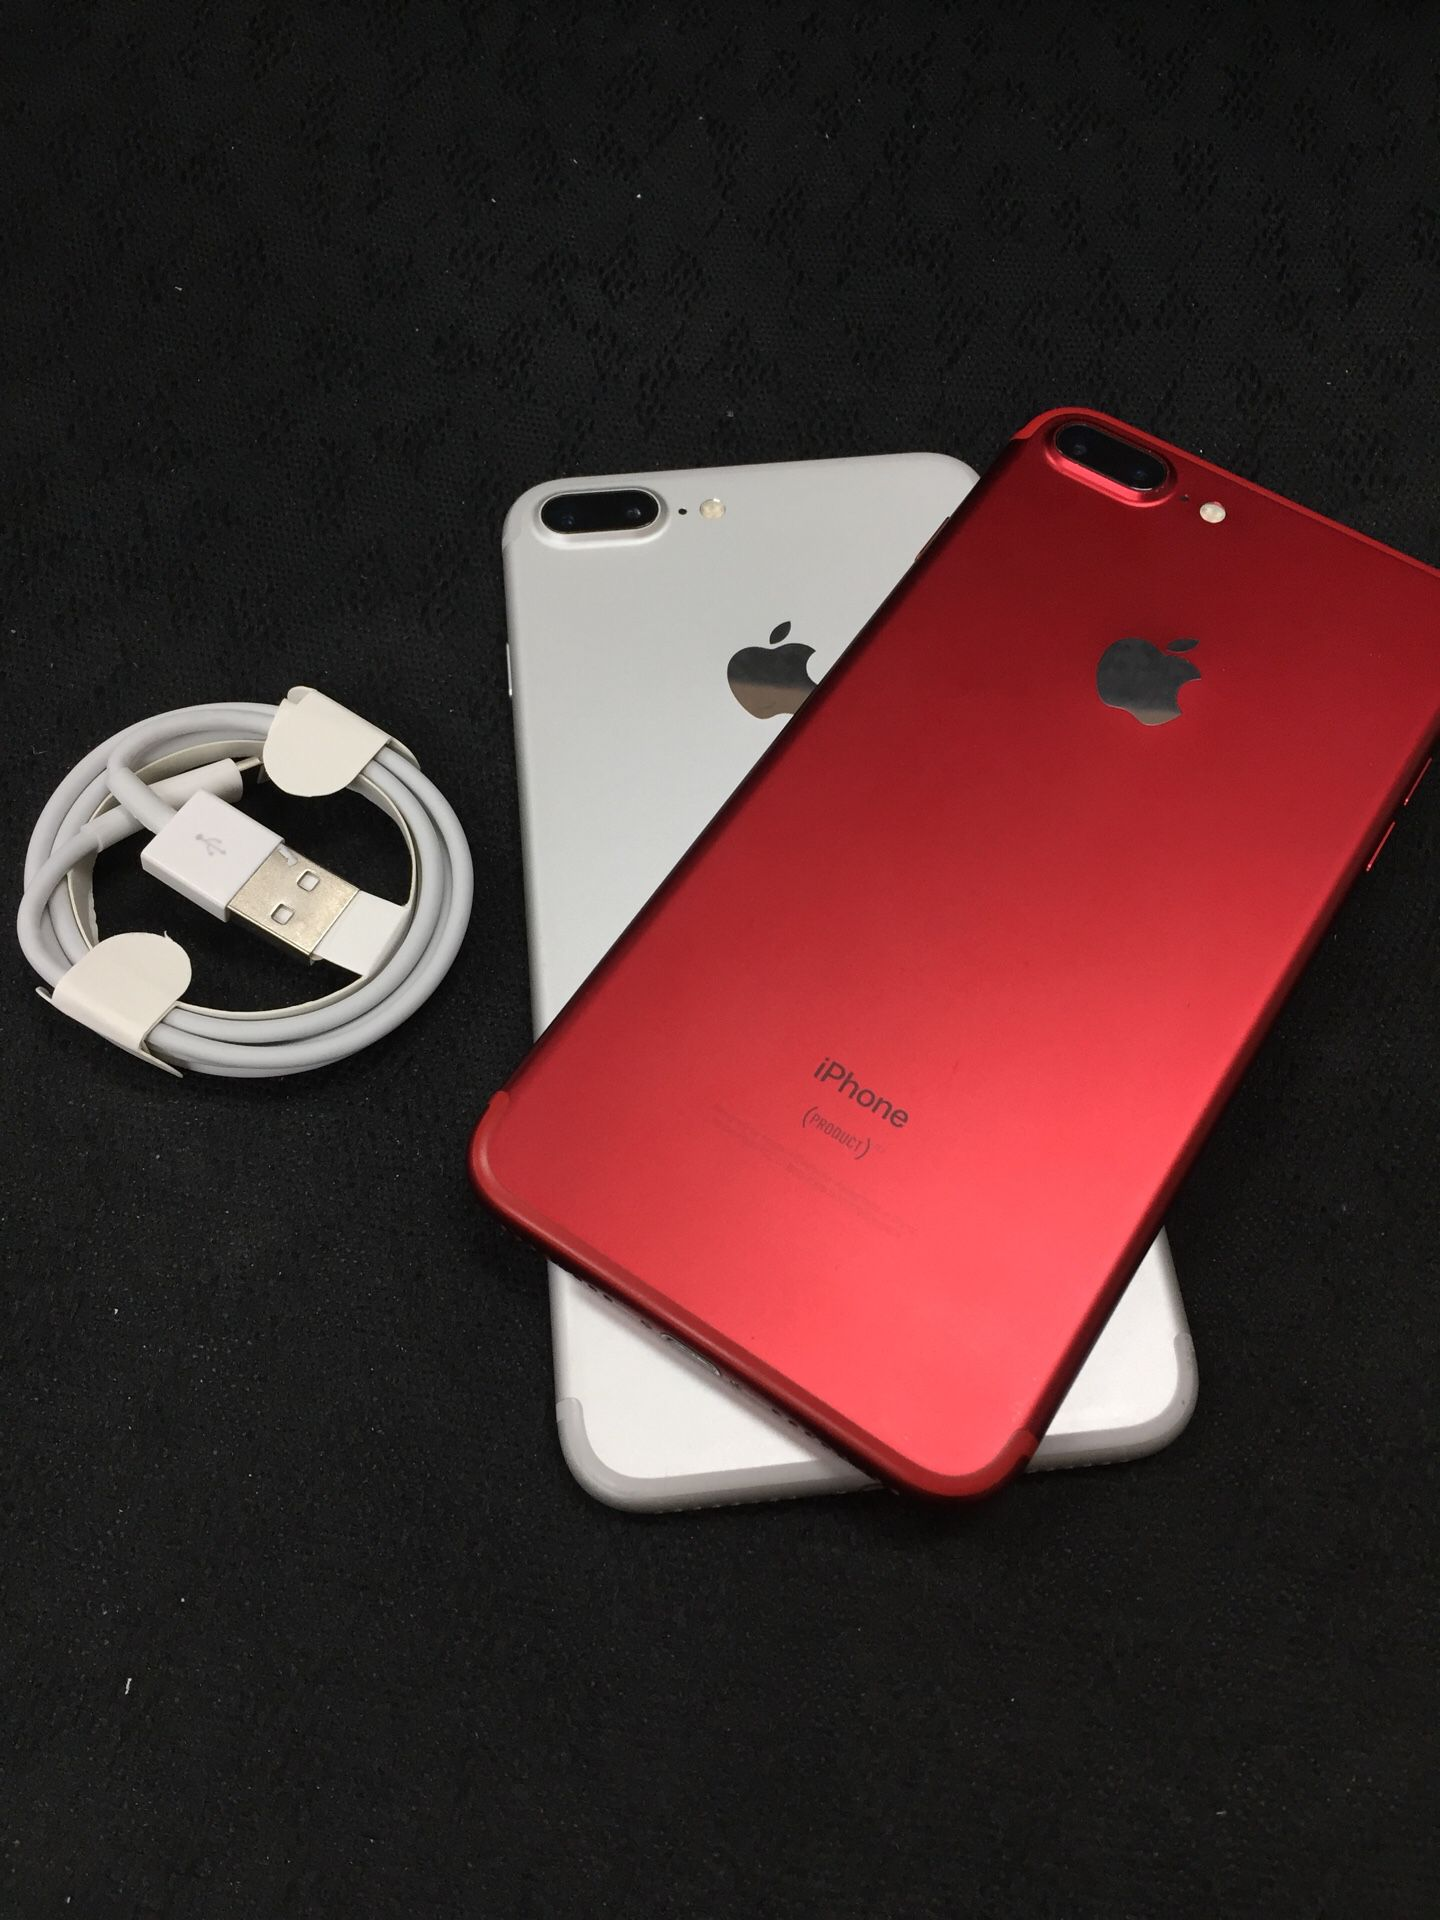 iPhone 7 Plus Unlocked like a new condition with the 30 days warranty